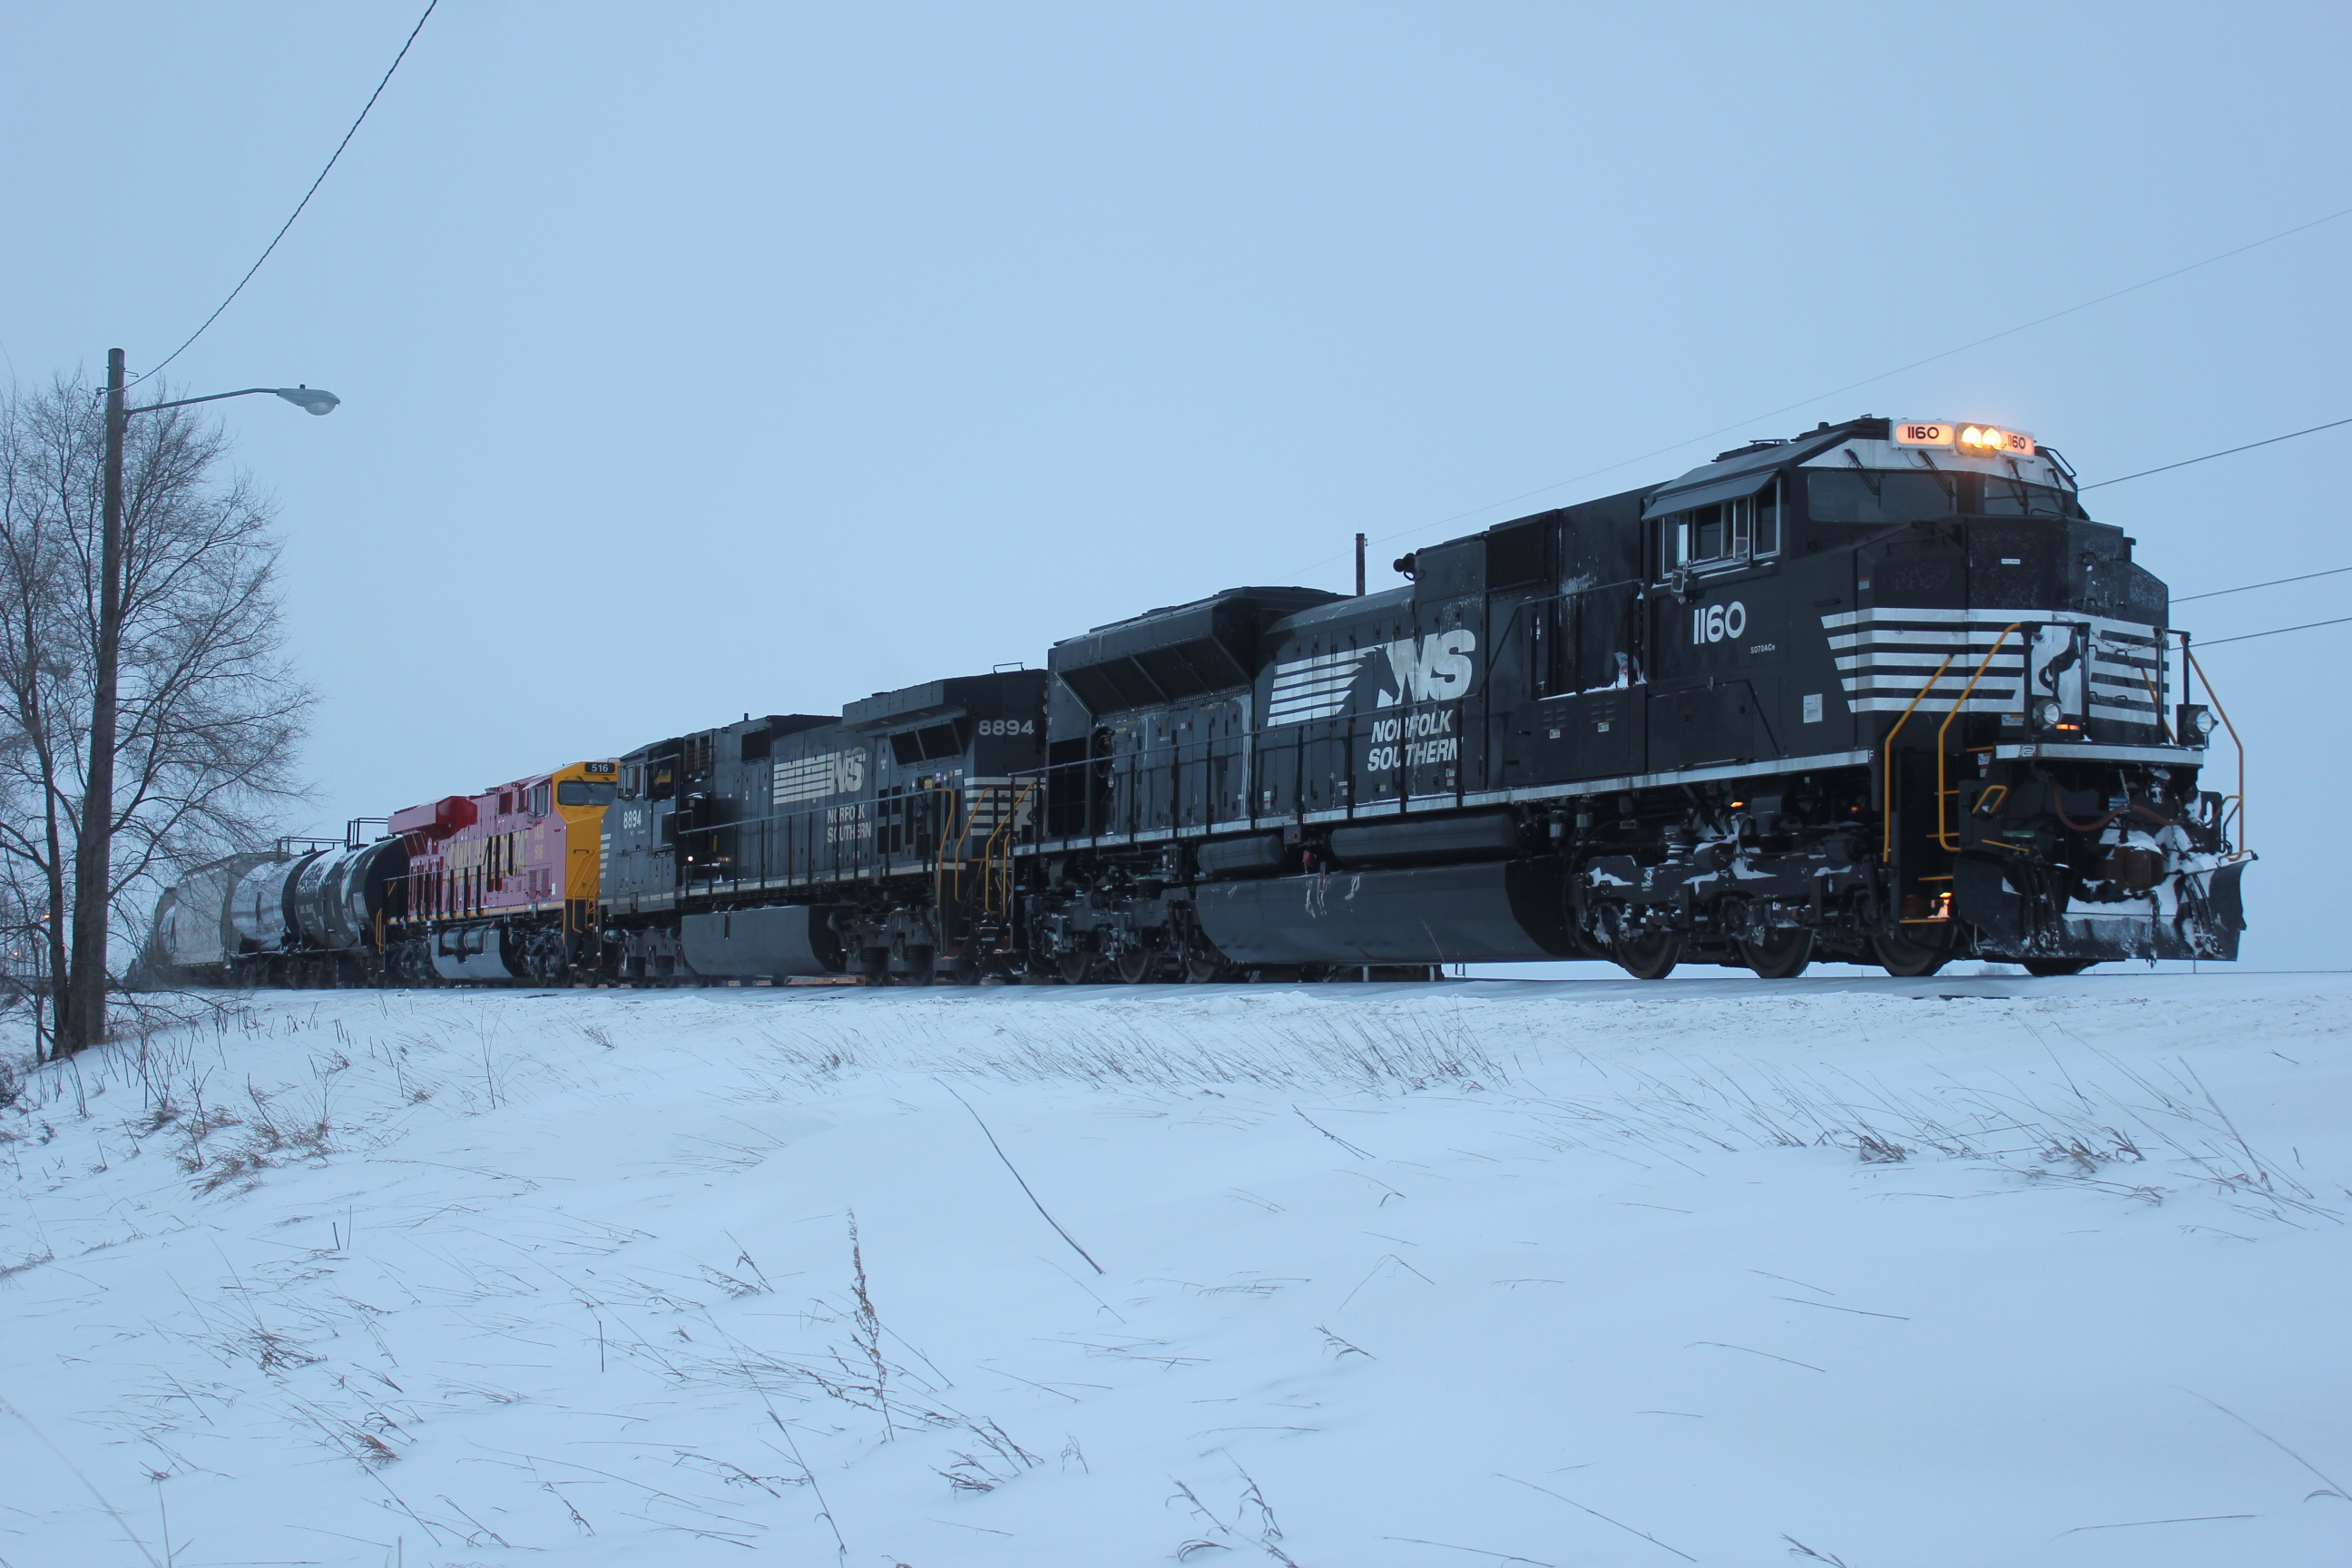 CP train 475 is working the new yard at Muscatine with a pair of NS motors for power and IAIS 516 in tow.